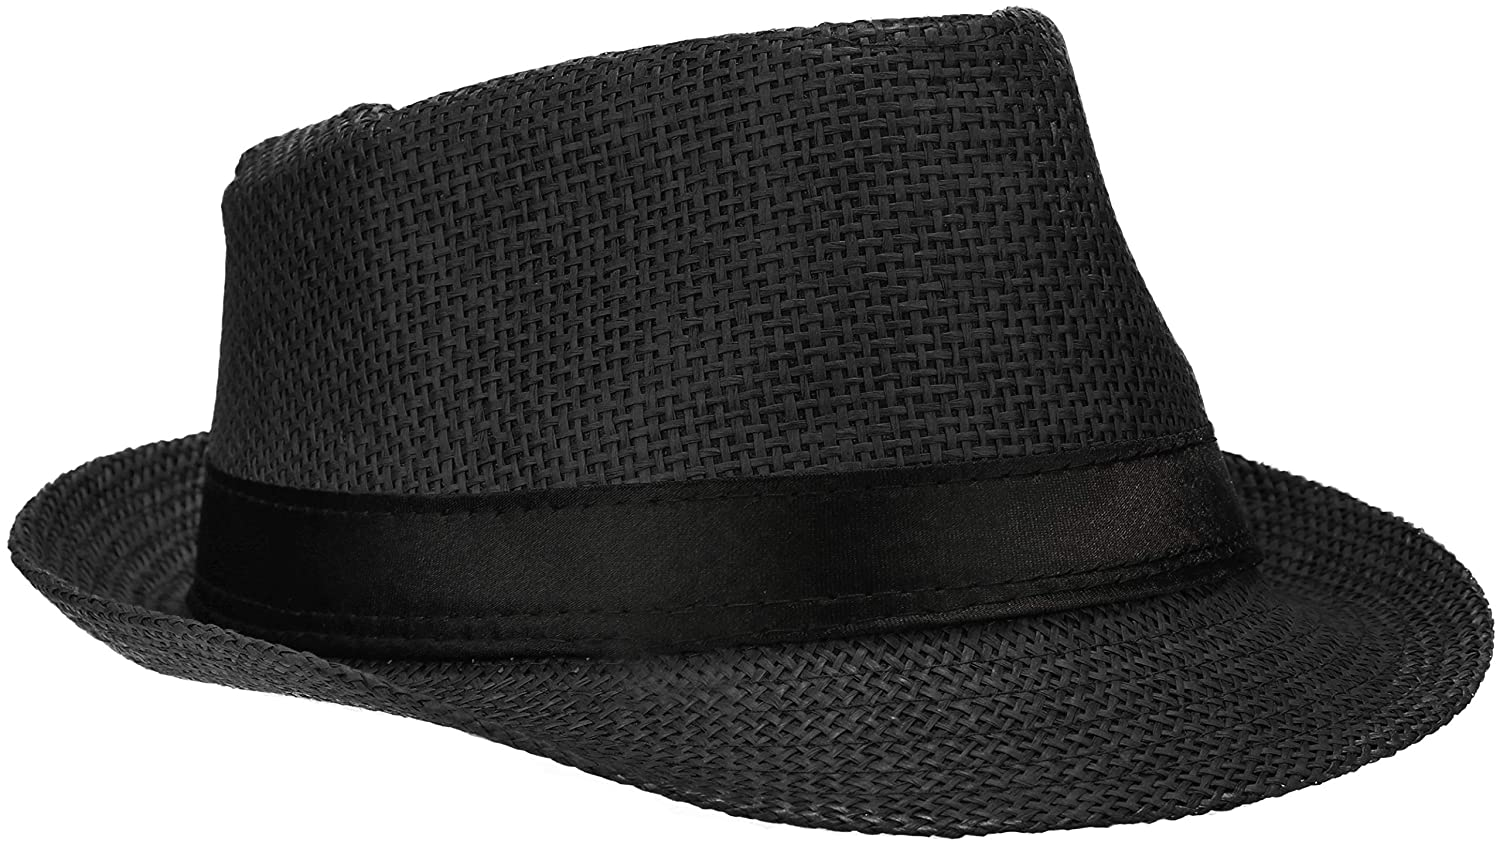 01 pieces - black sunhat Wilhelm Sell/® straw hat Panama fedora hat in black with black ribbon